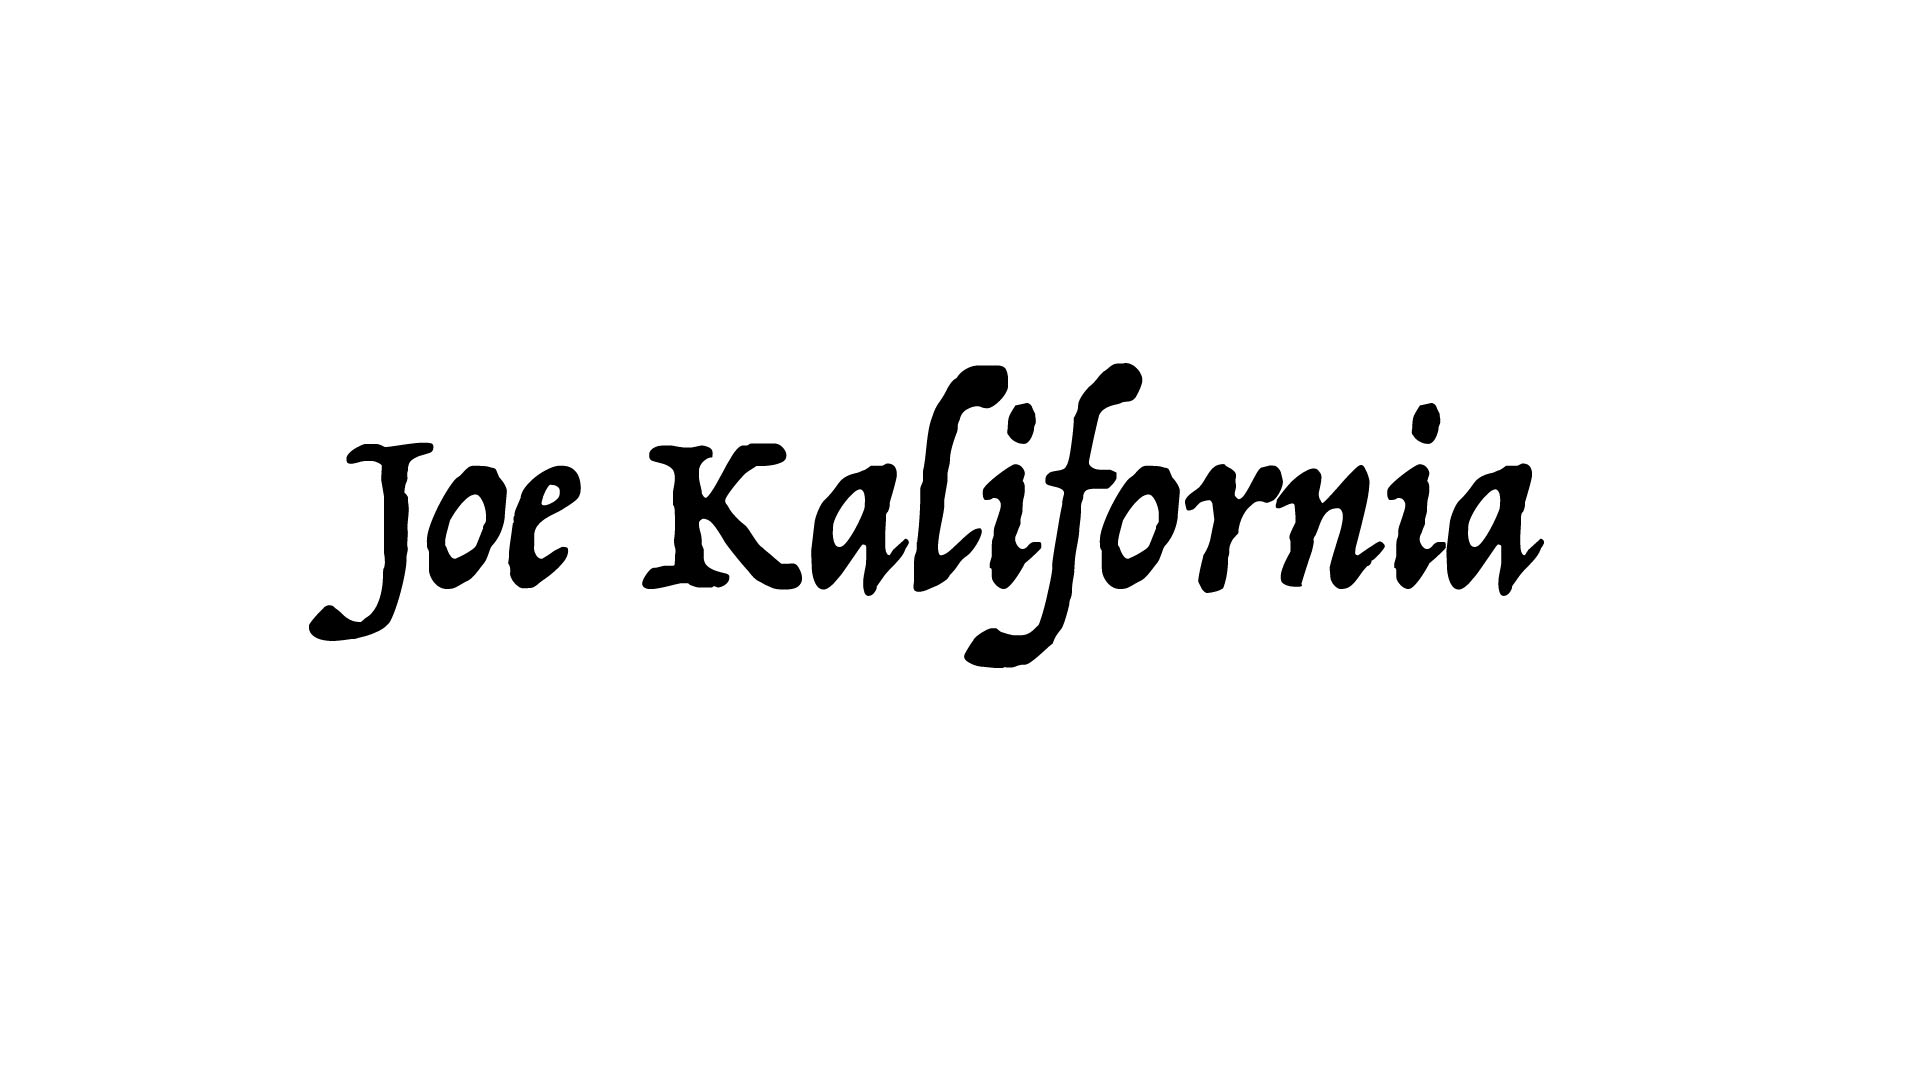 Joe kalifornia's Signature